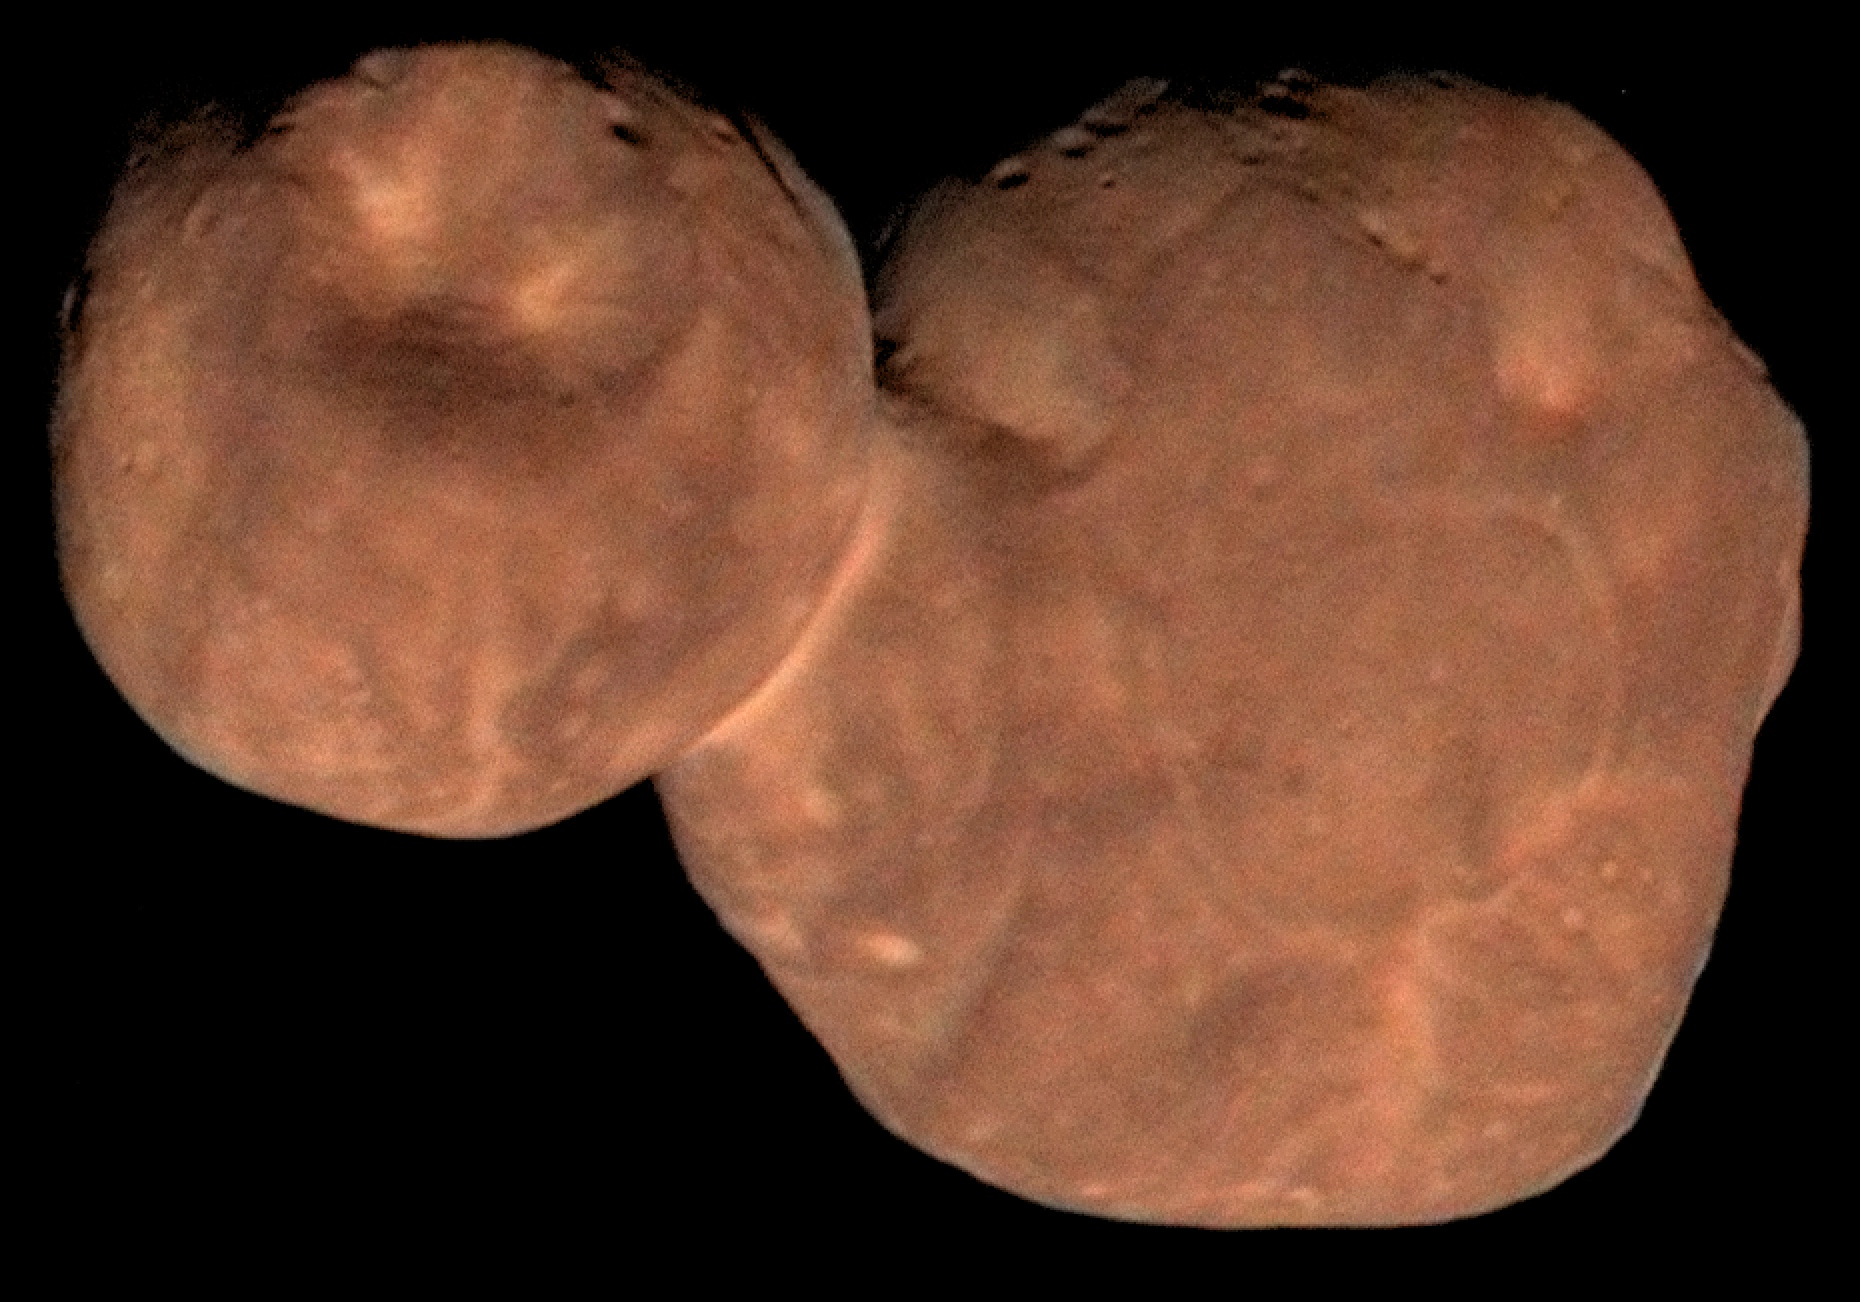 reddish, cratered object with two attached lobes